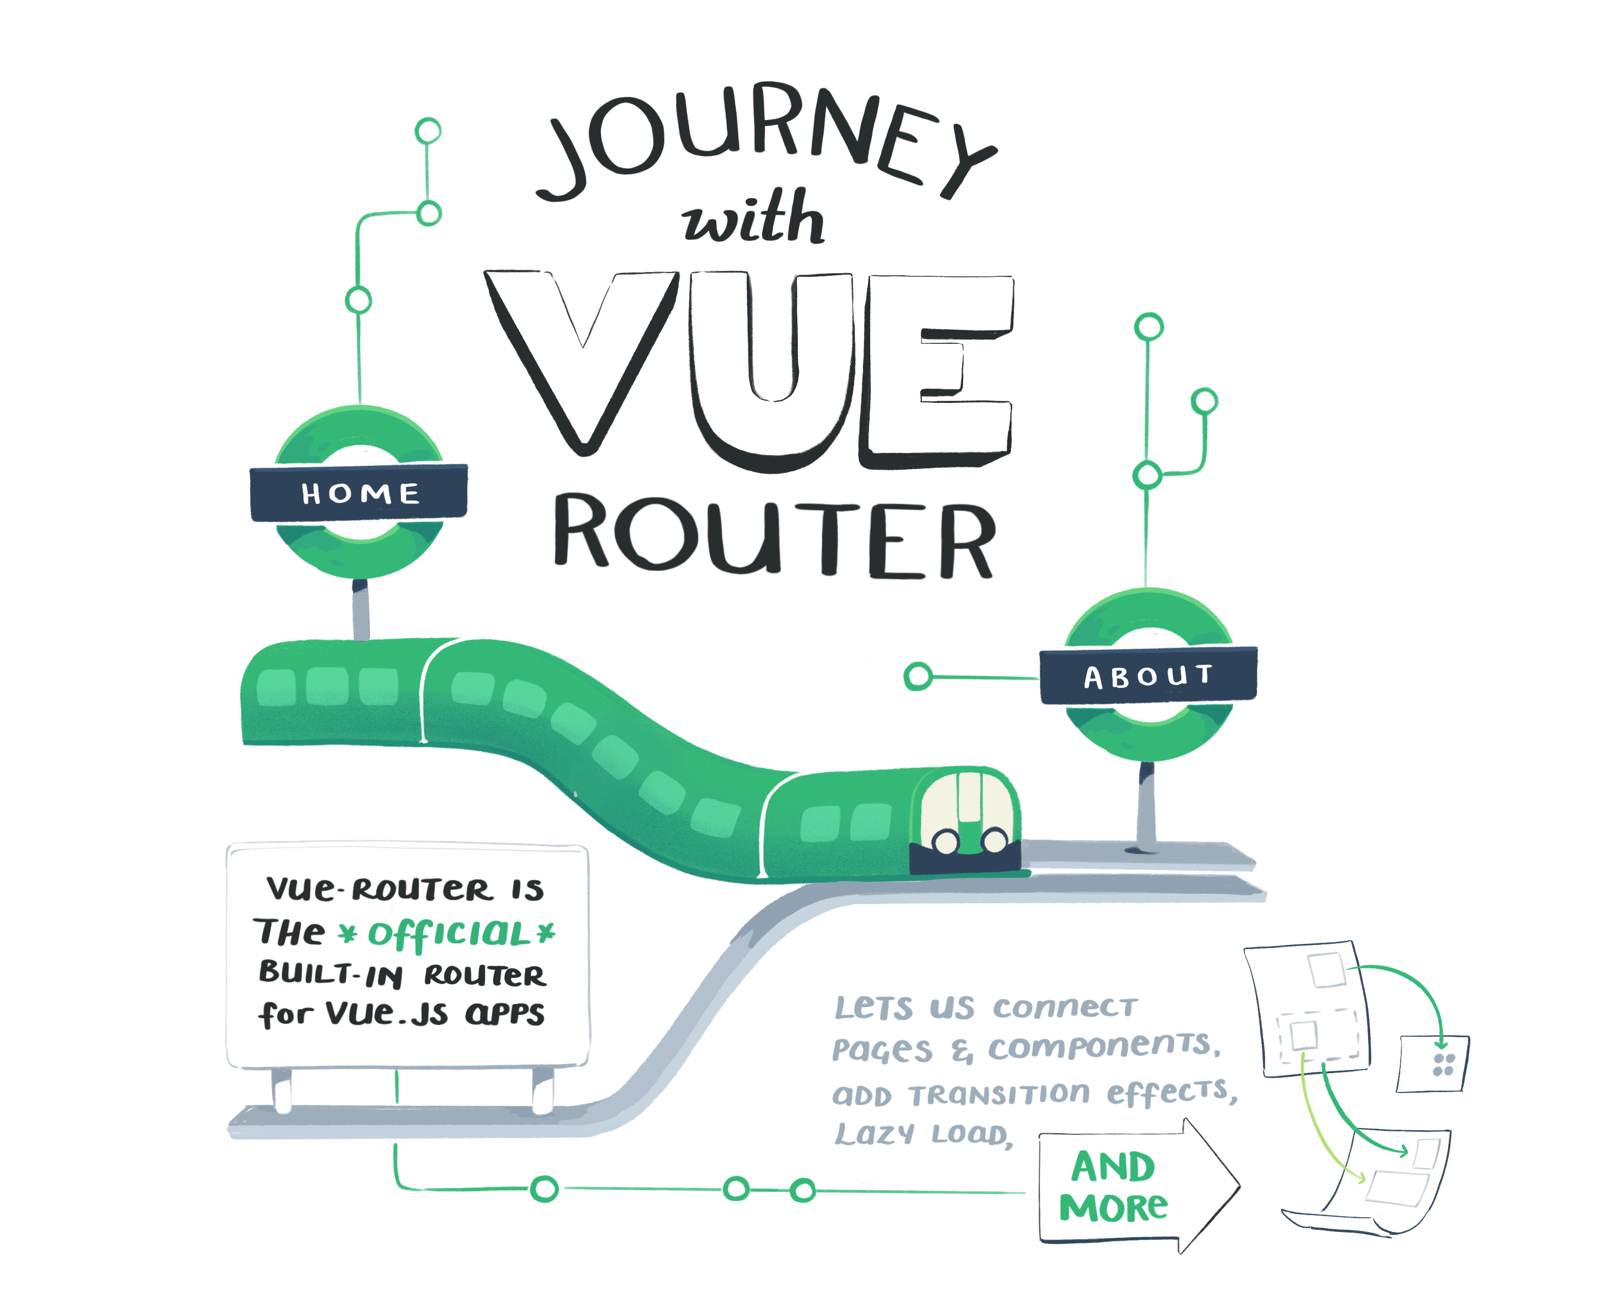 Journey with Vue Router